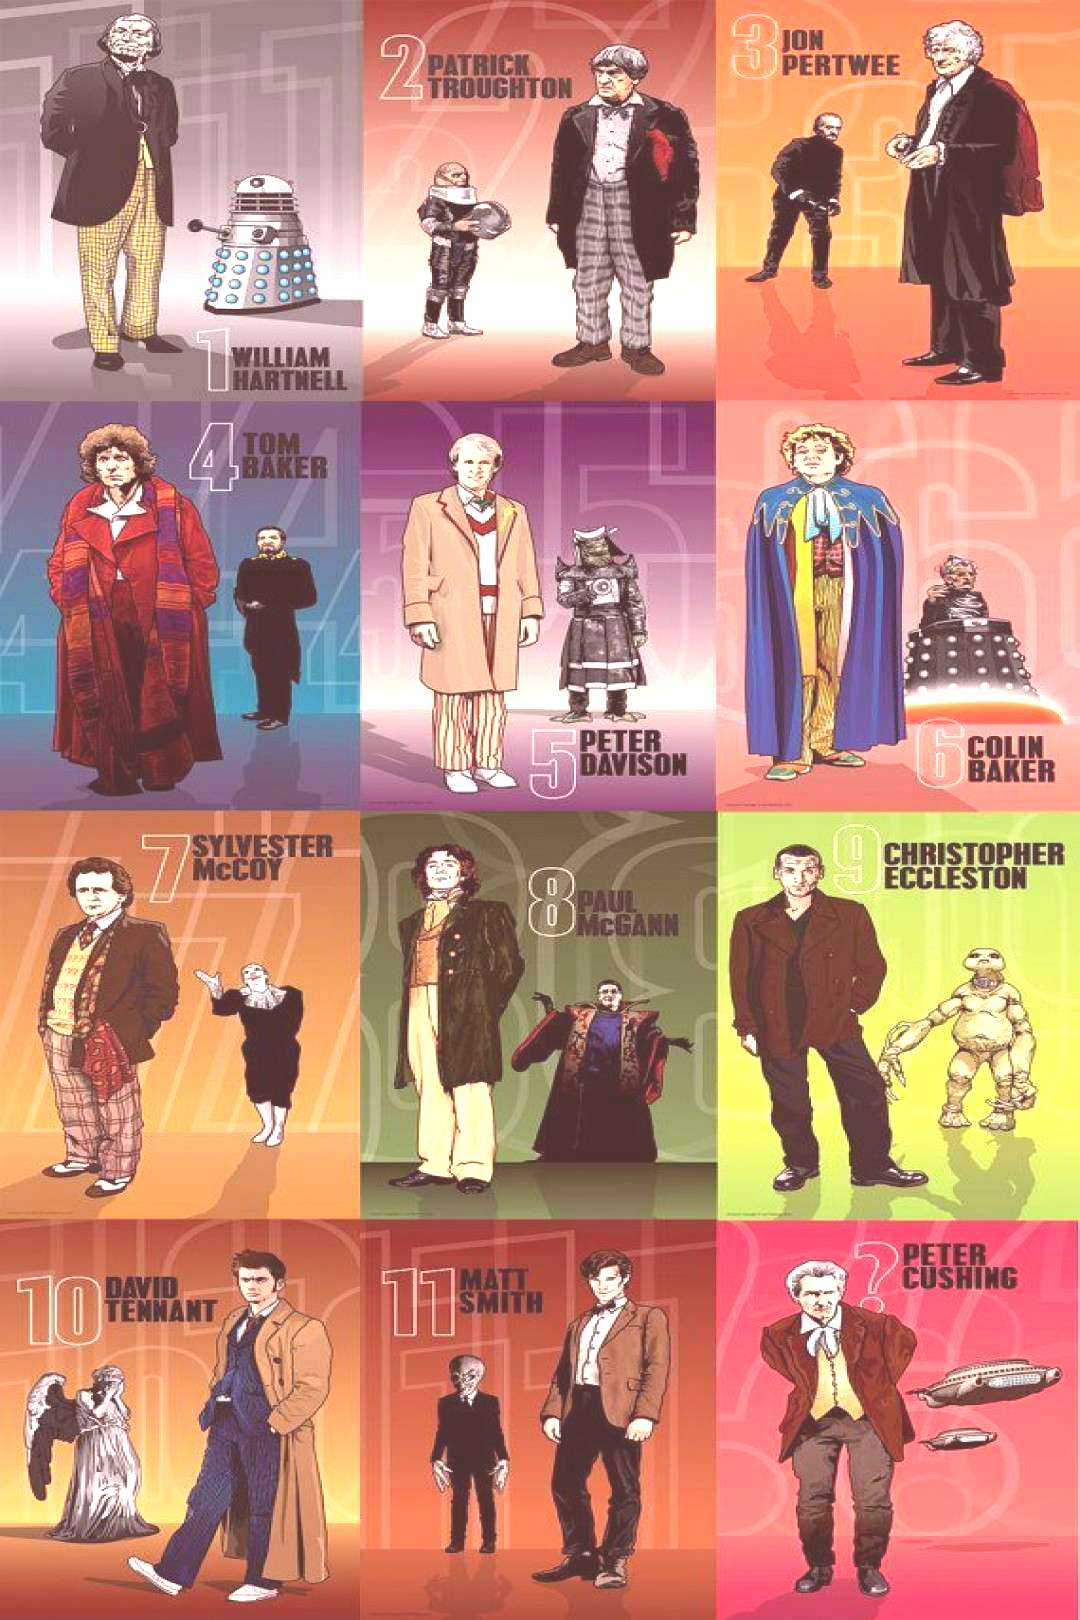 Doctor Who - The 12 Doctors Alternatives - 6 x 4 Set of Prints via EtsyYou can find Doctor who and